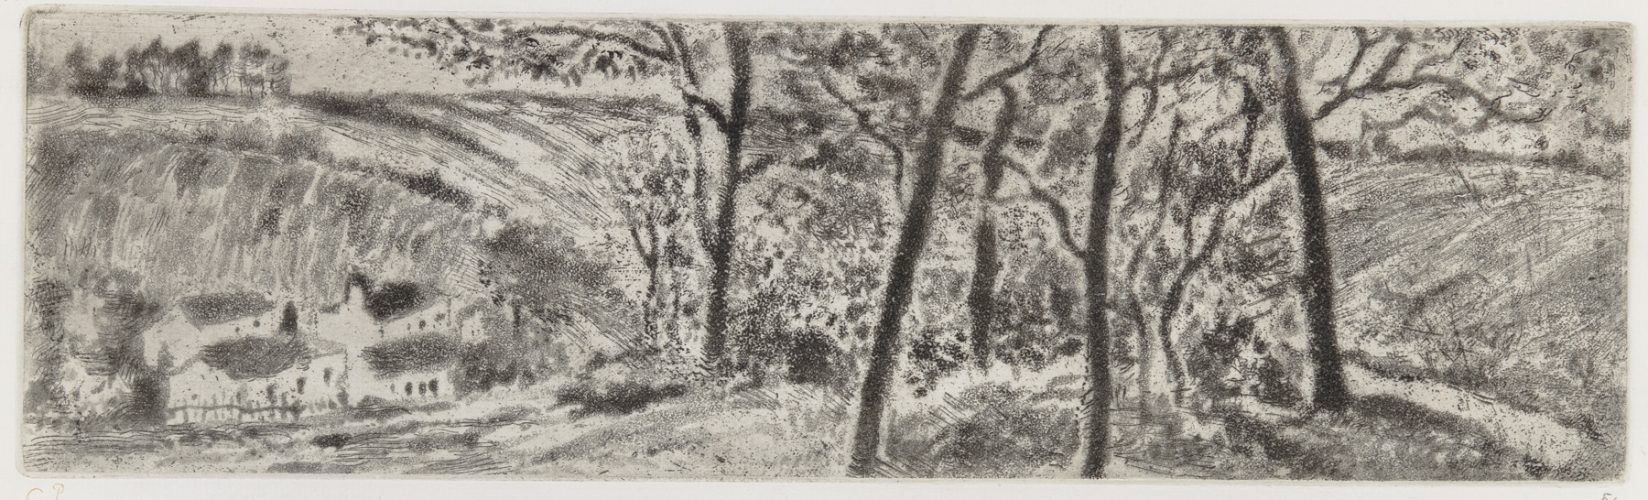 Paysage En Long (landscape Panorama) by Camille Pissarro at Christopher-Clark Fine Art